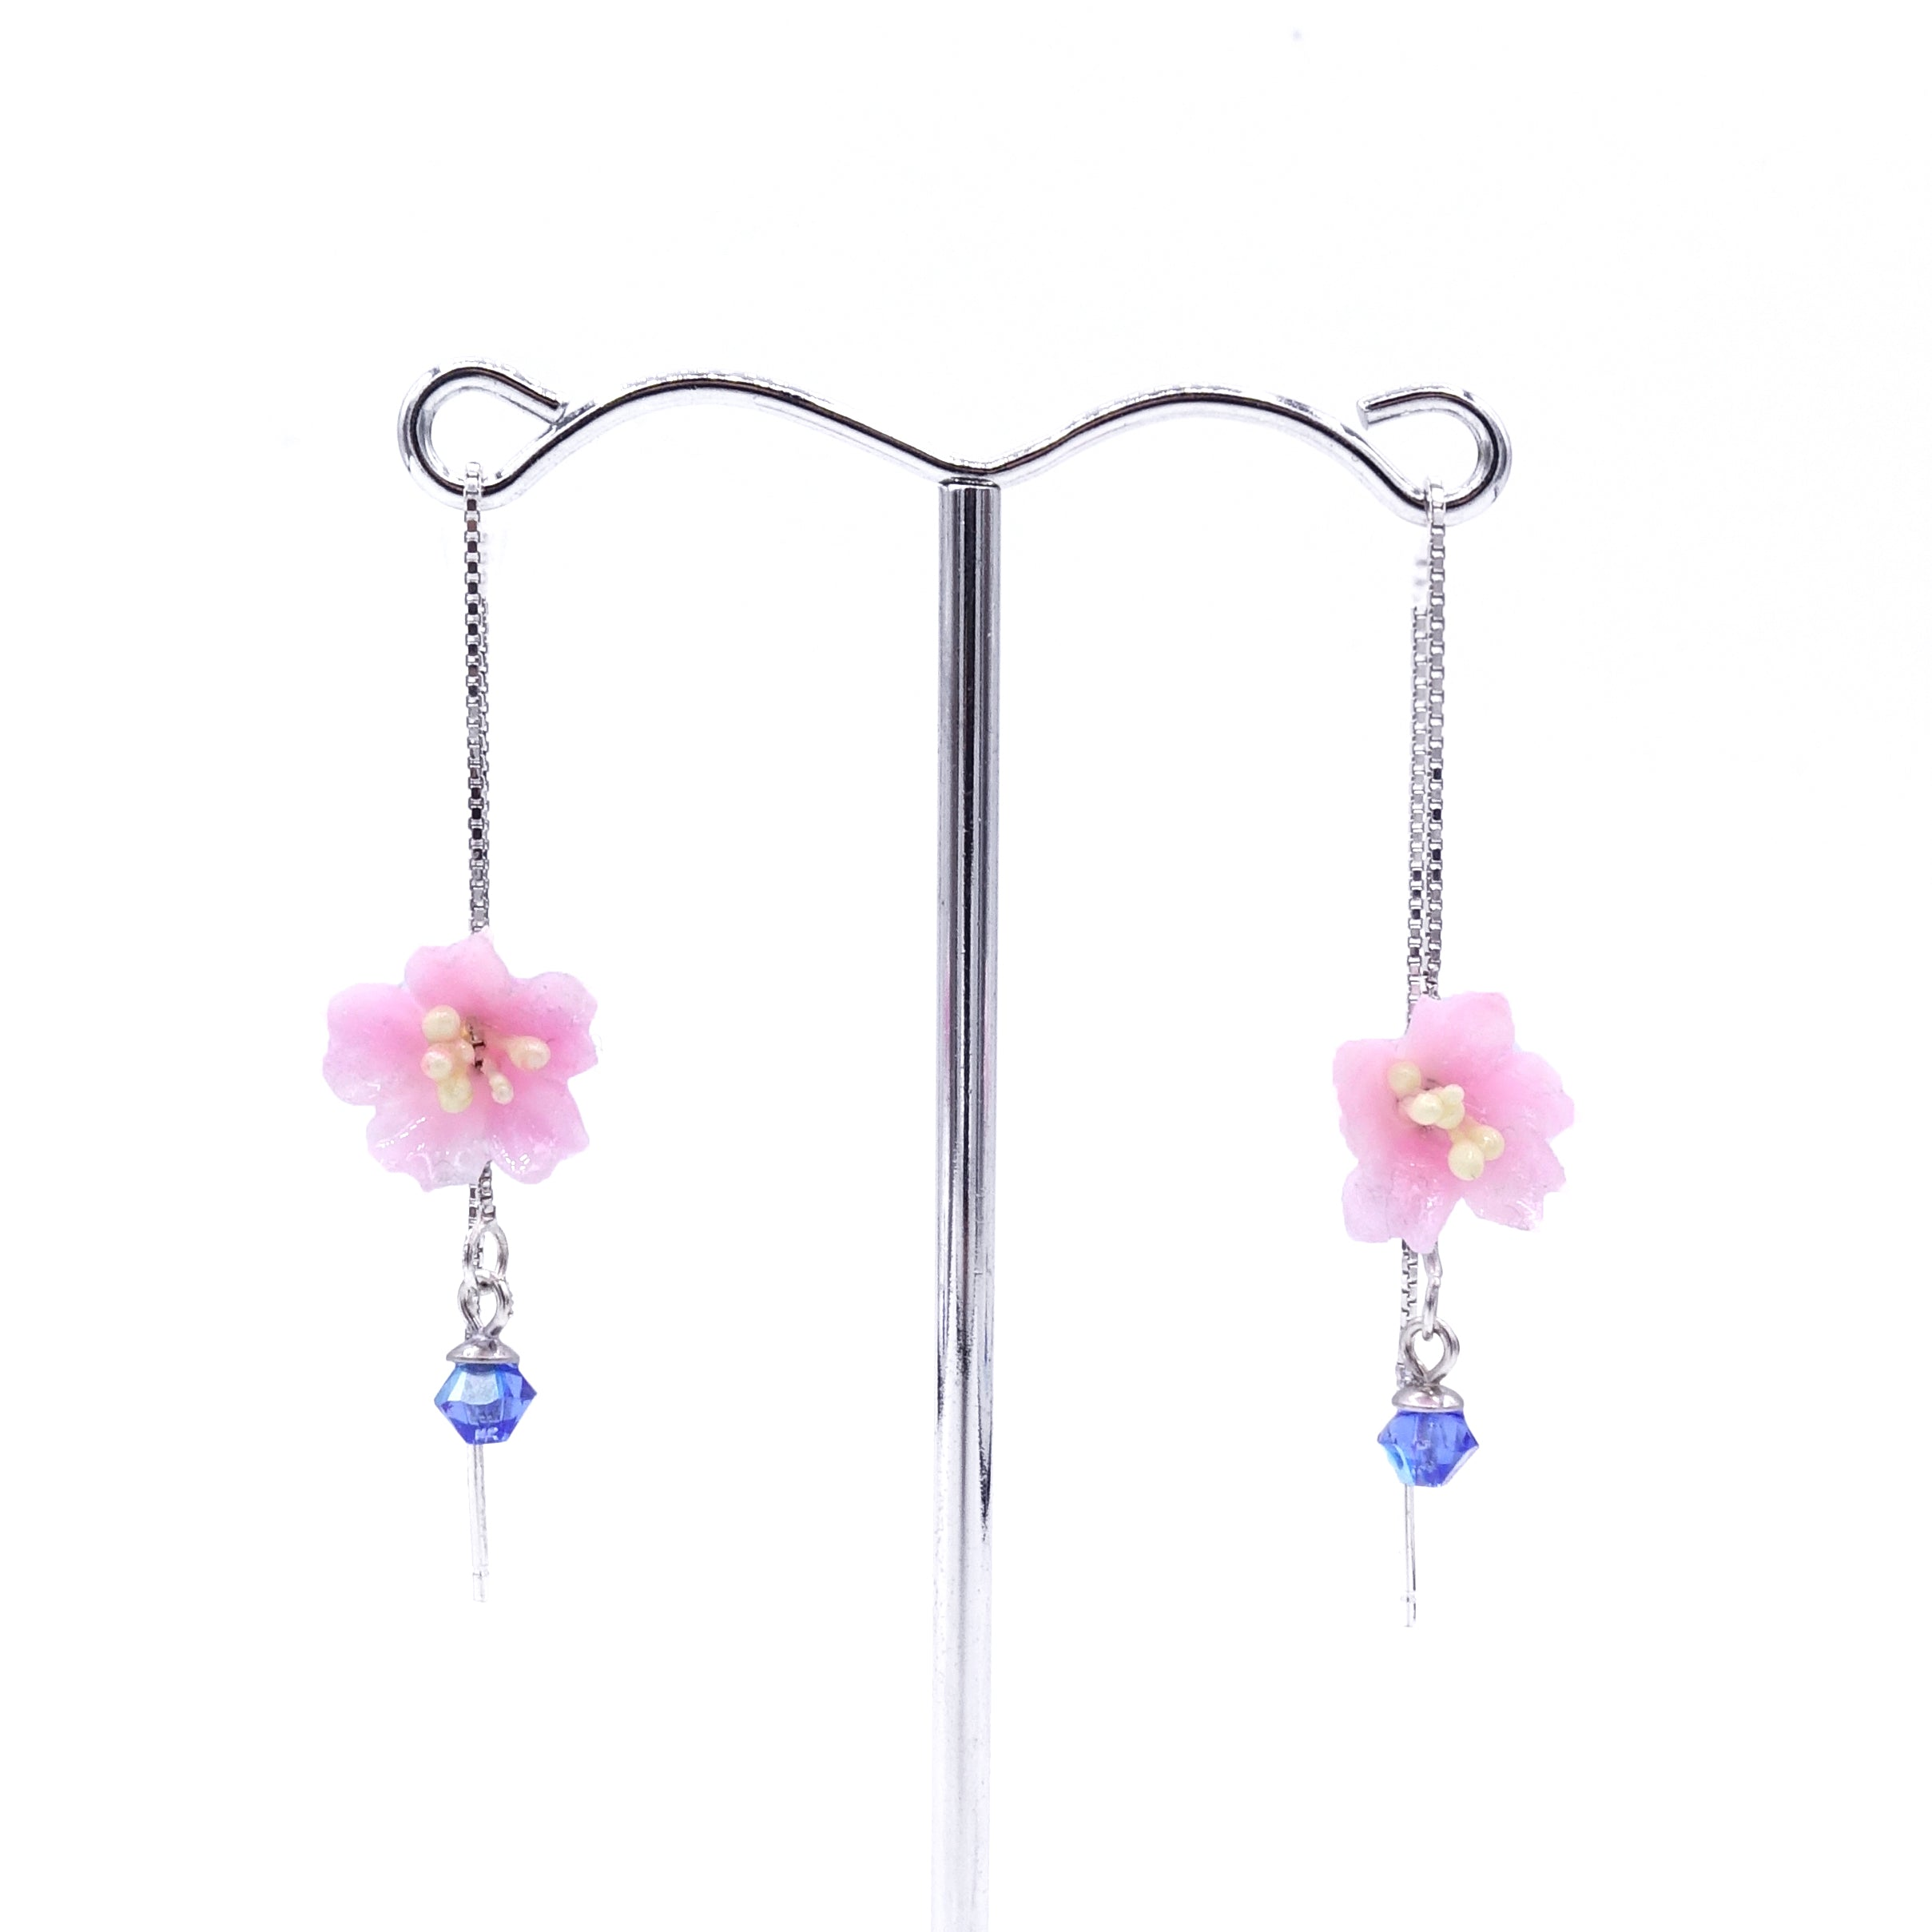 SAKURA COLLECTION Night-Sakura Floral Ear Chains